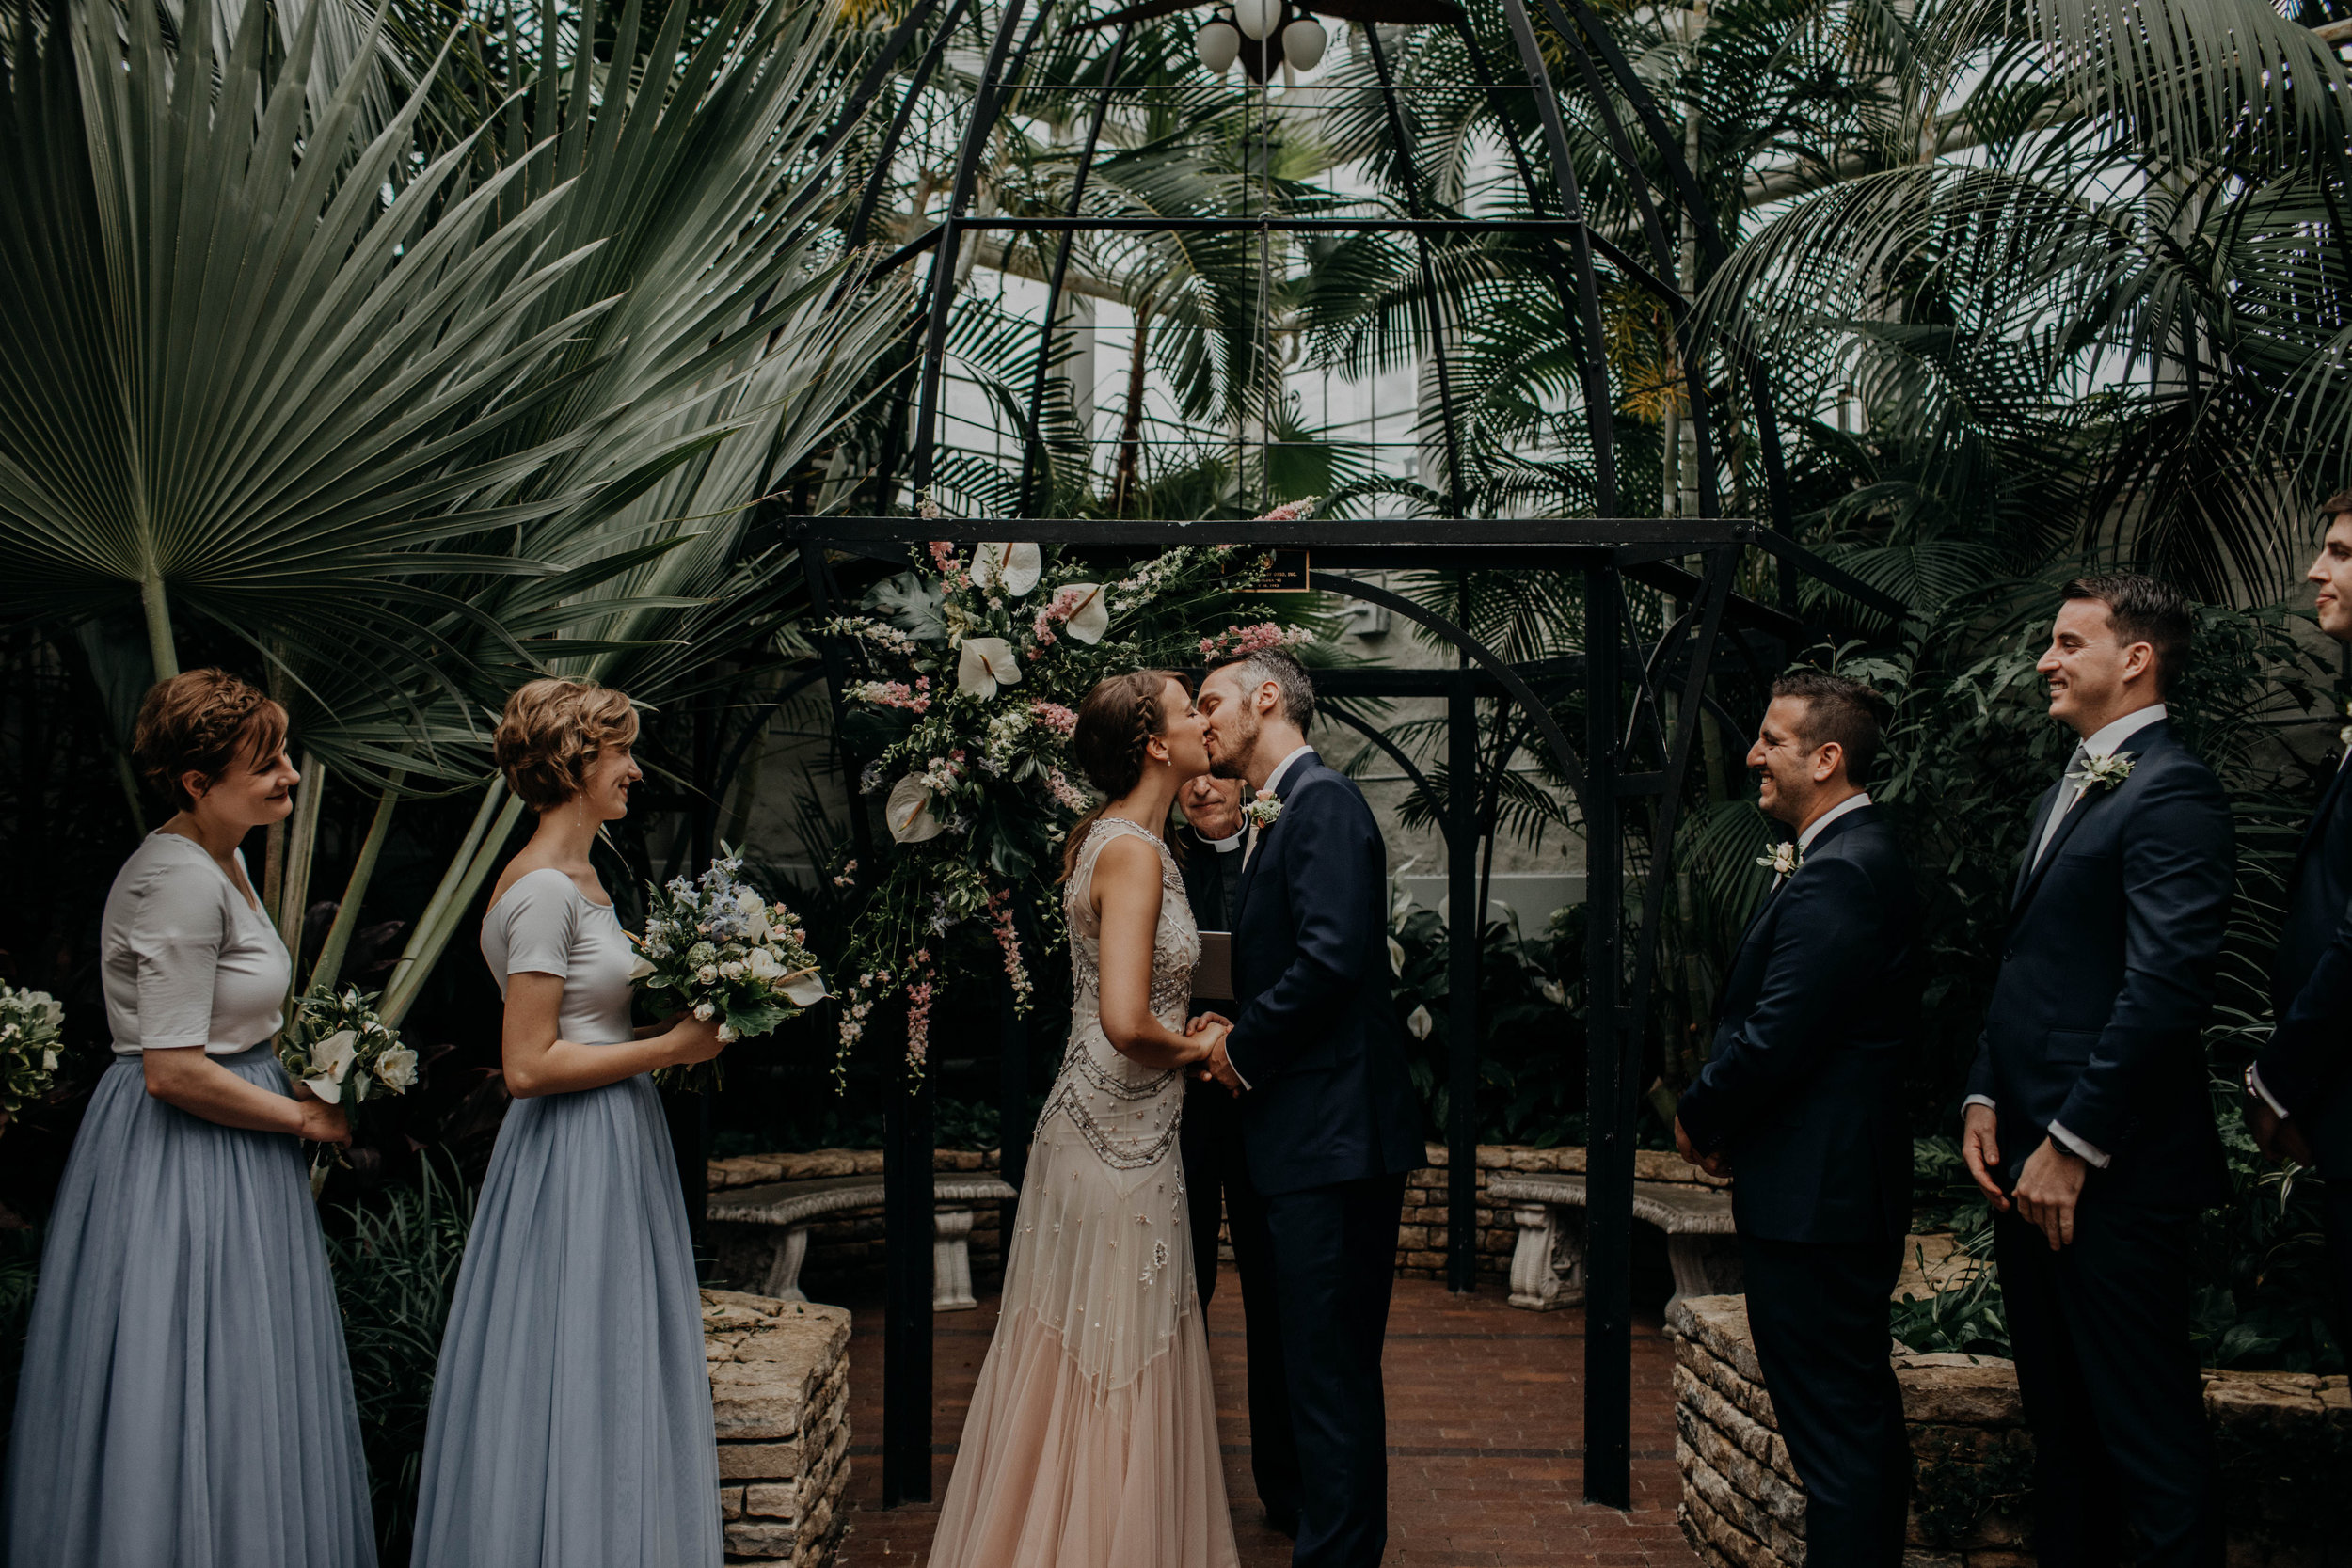 franklin park conservatory wedding columbus ohio wedding photographer grace e jones photography269.jpg